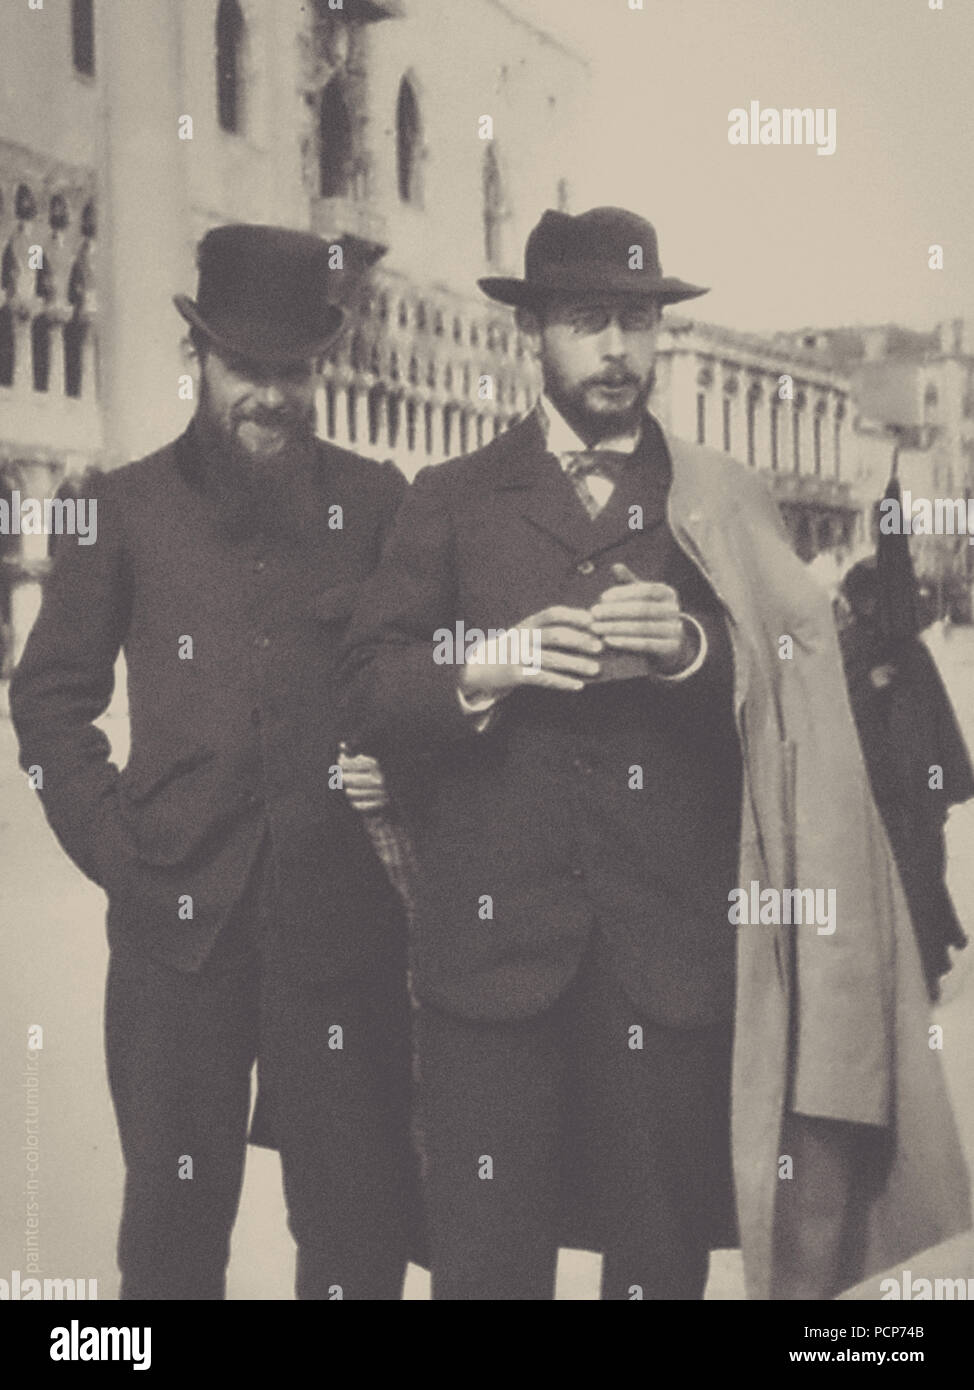 Pierre Bonnard (holding his Kodak box camera) with Ker-Xavier Roussel in Venice, 1899. Private Collection. - Stock Image